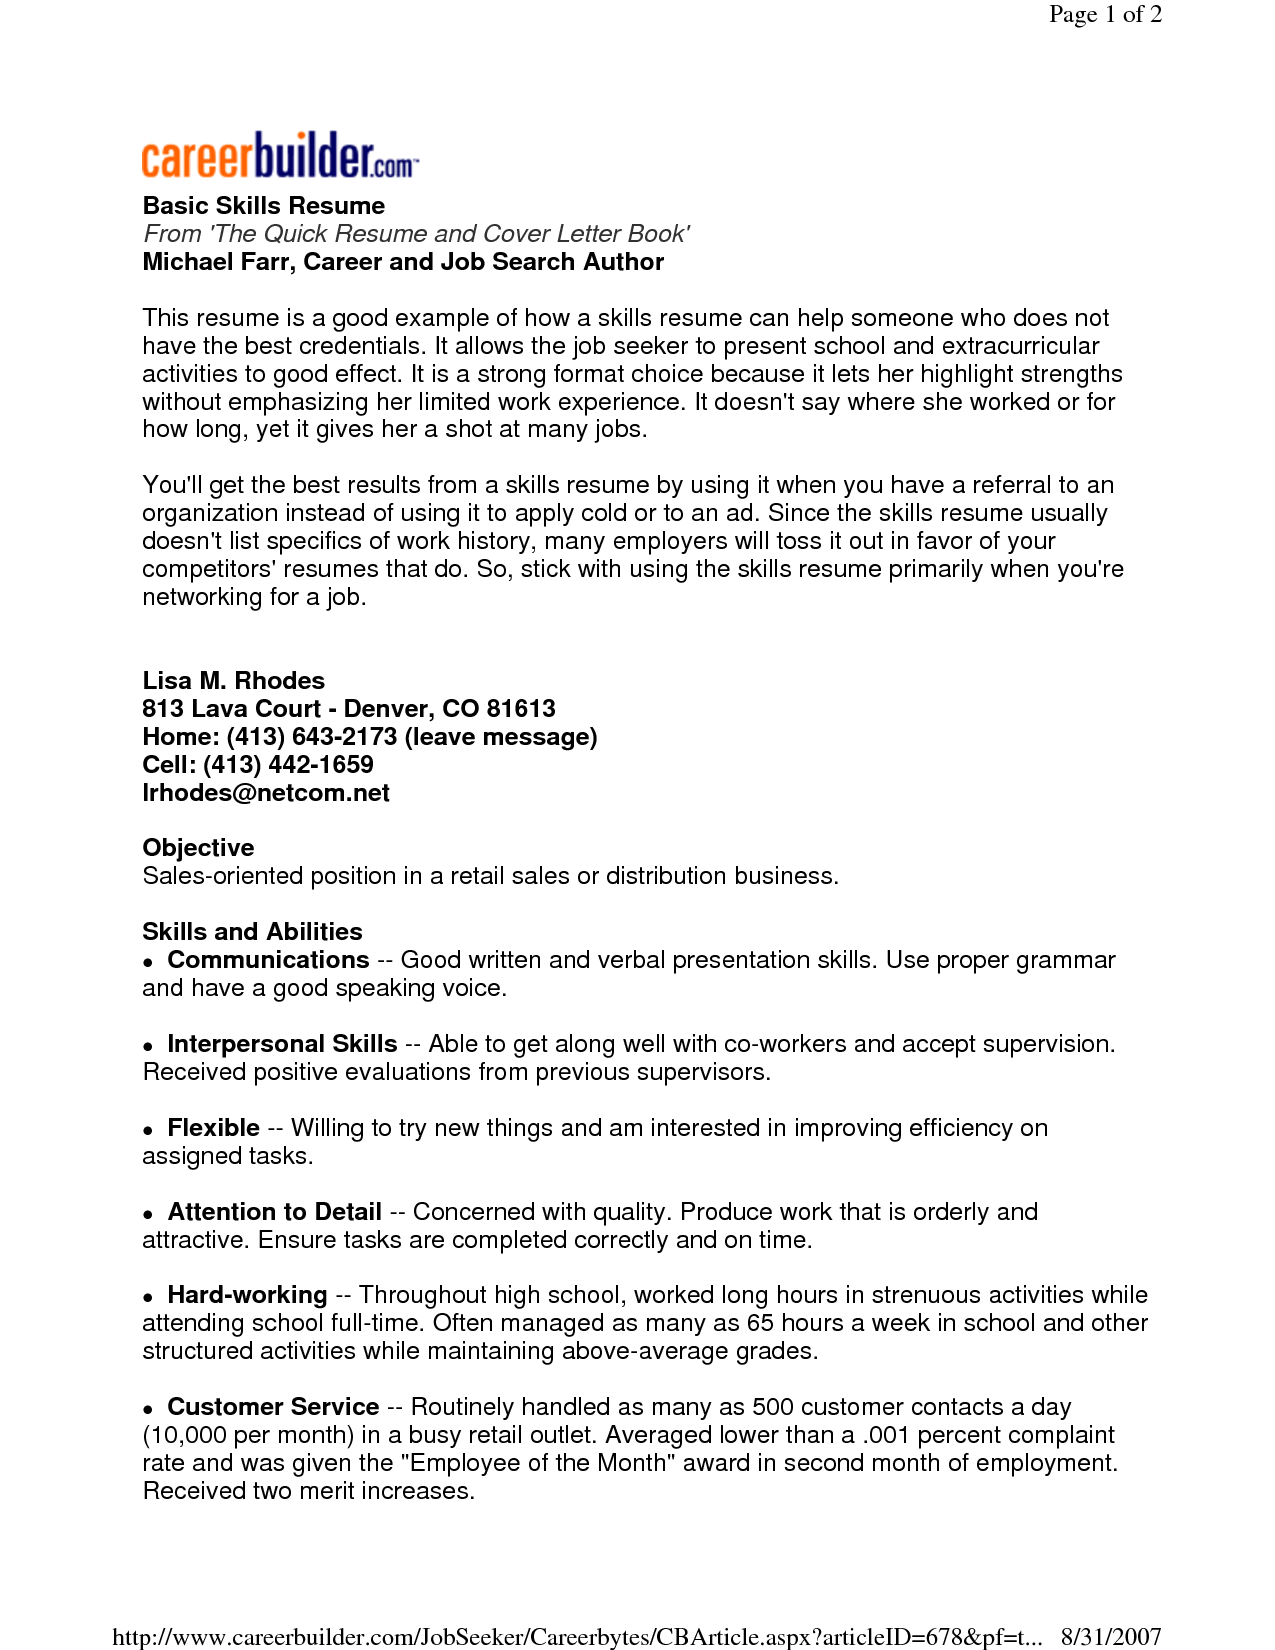 Find Resume Free Find Here The Sample Resume That Best Fits Your Profile In